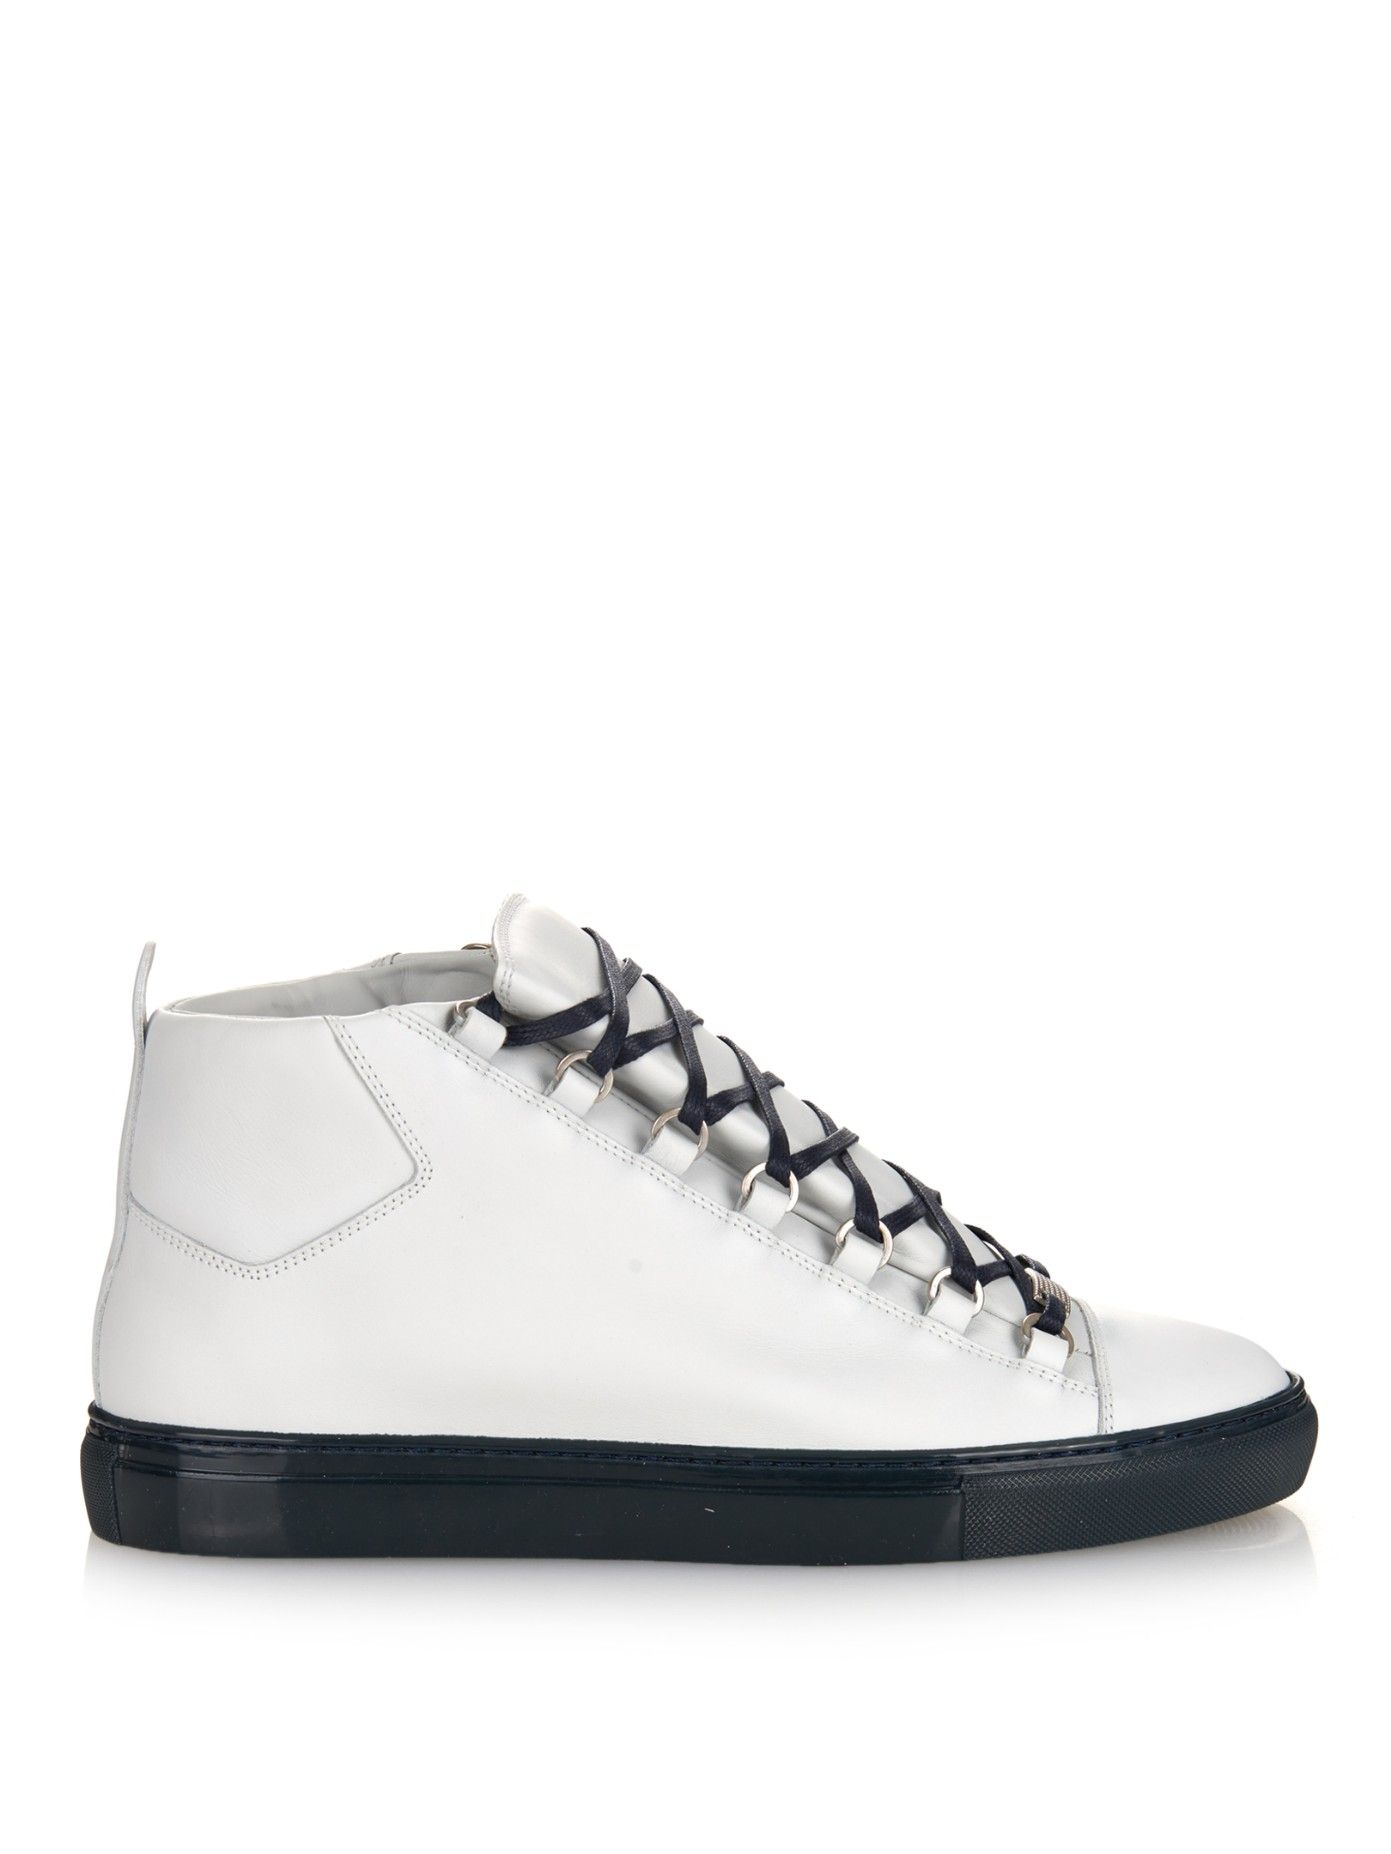 6ae5b889bee7 Arena leather high-top trainers by Balenciaga